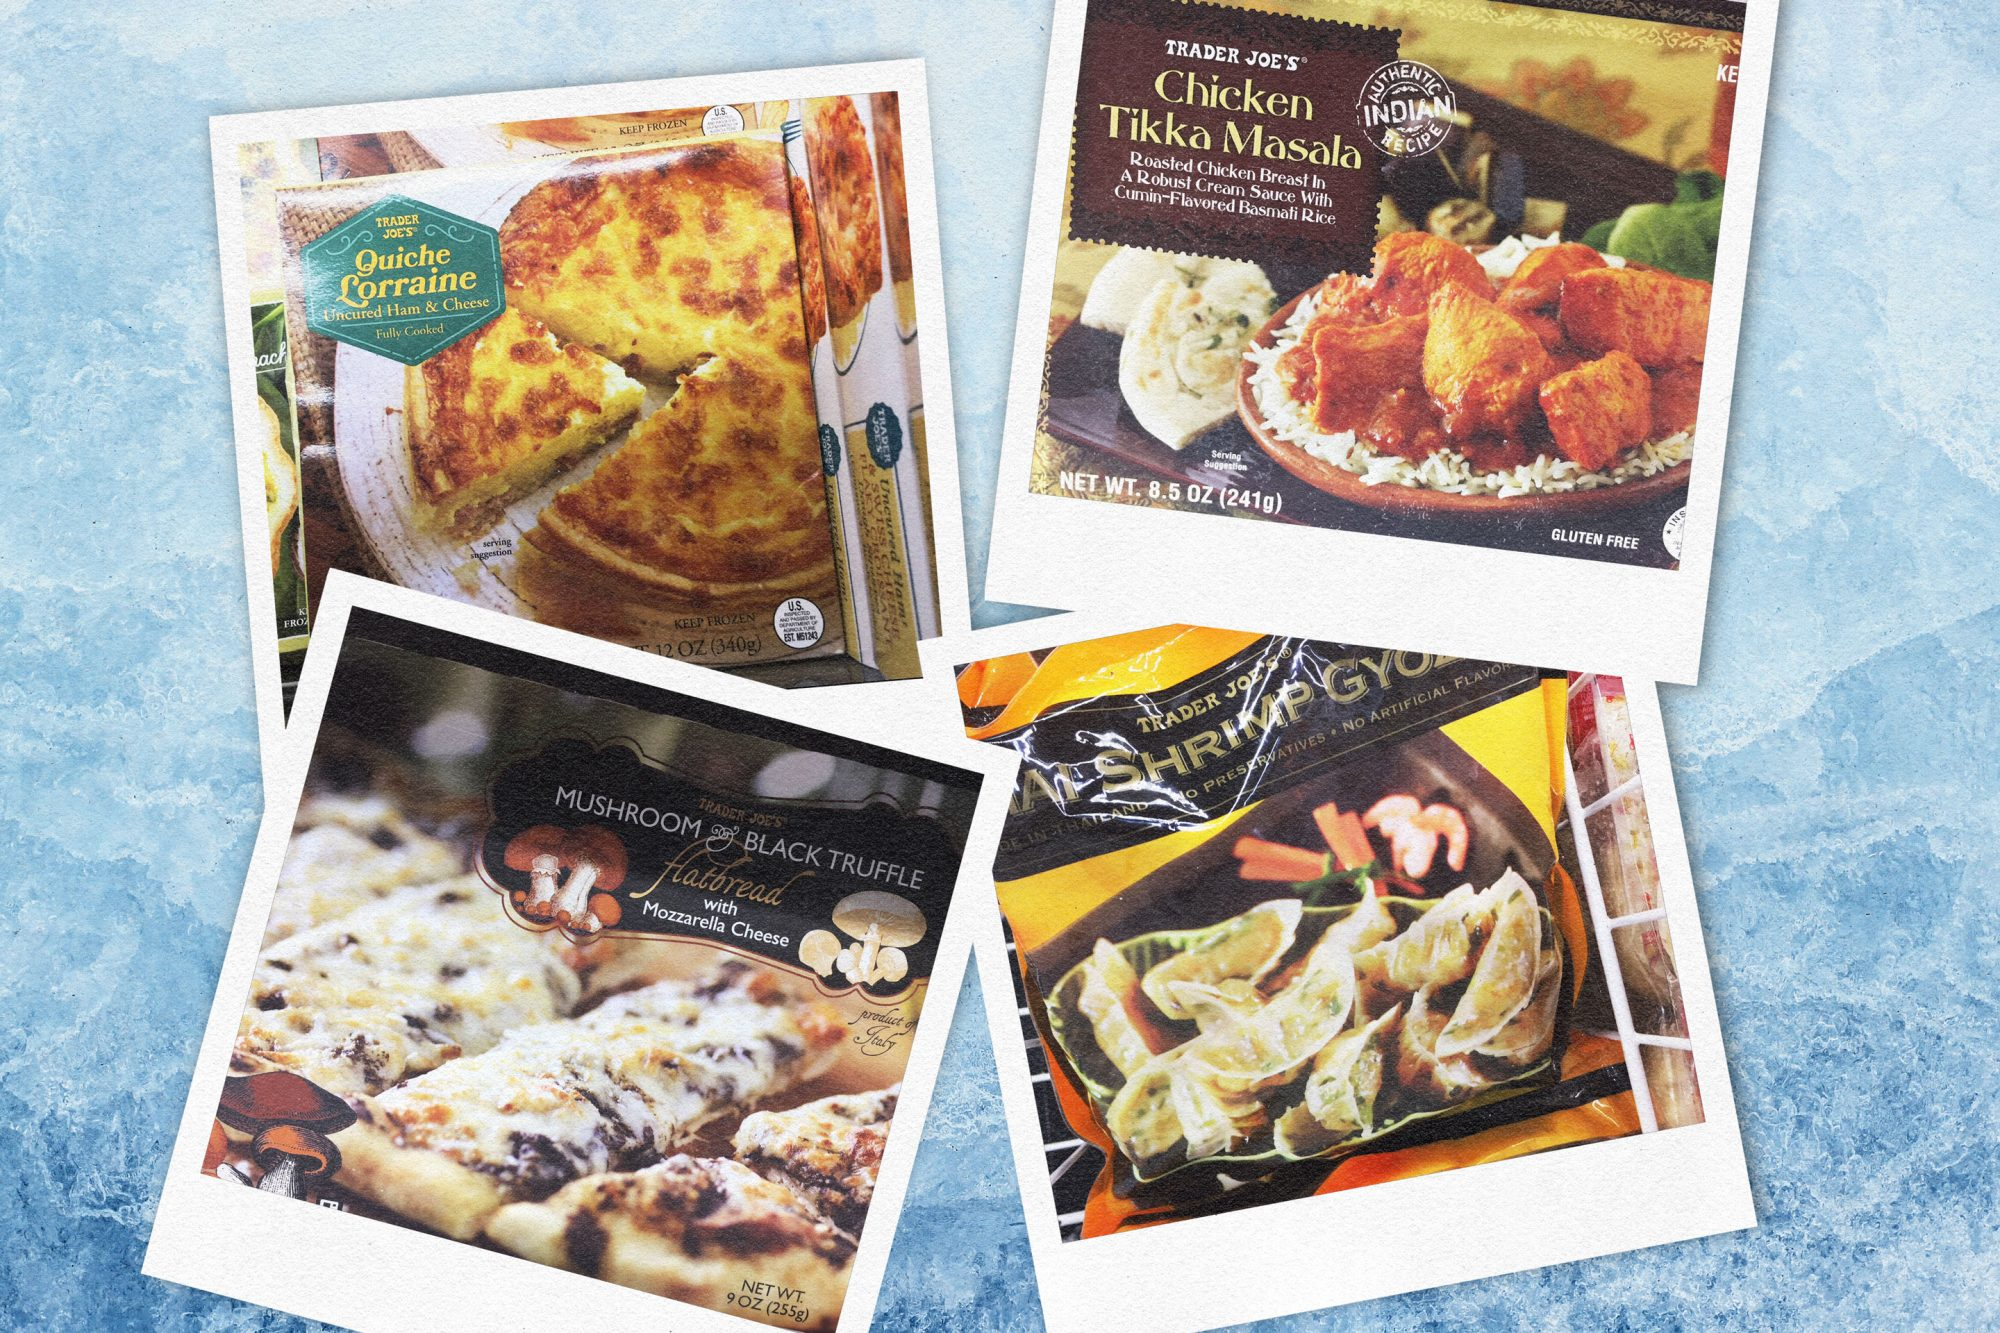 These Trader Joe's Frozen Foods Are All Less Than $5 and Taste Better Than Takeout